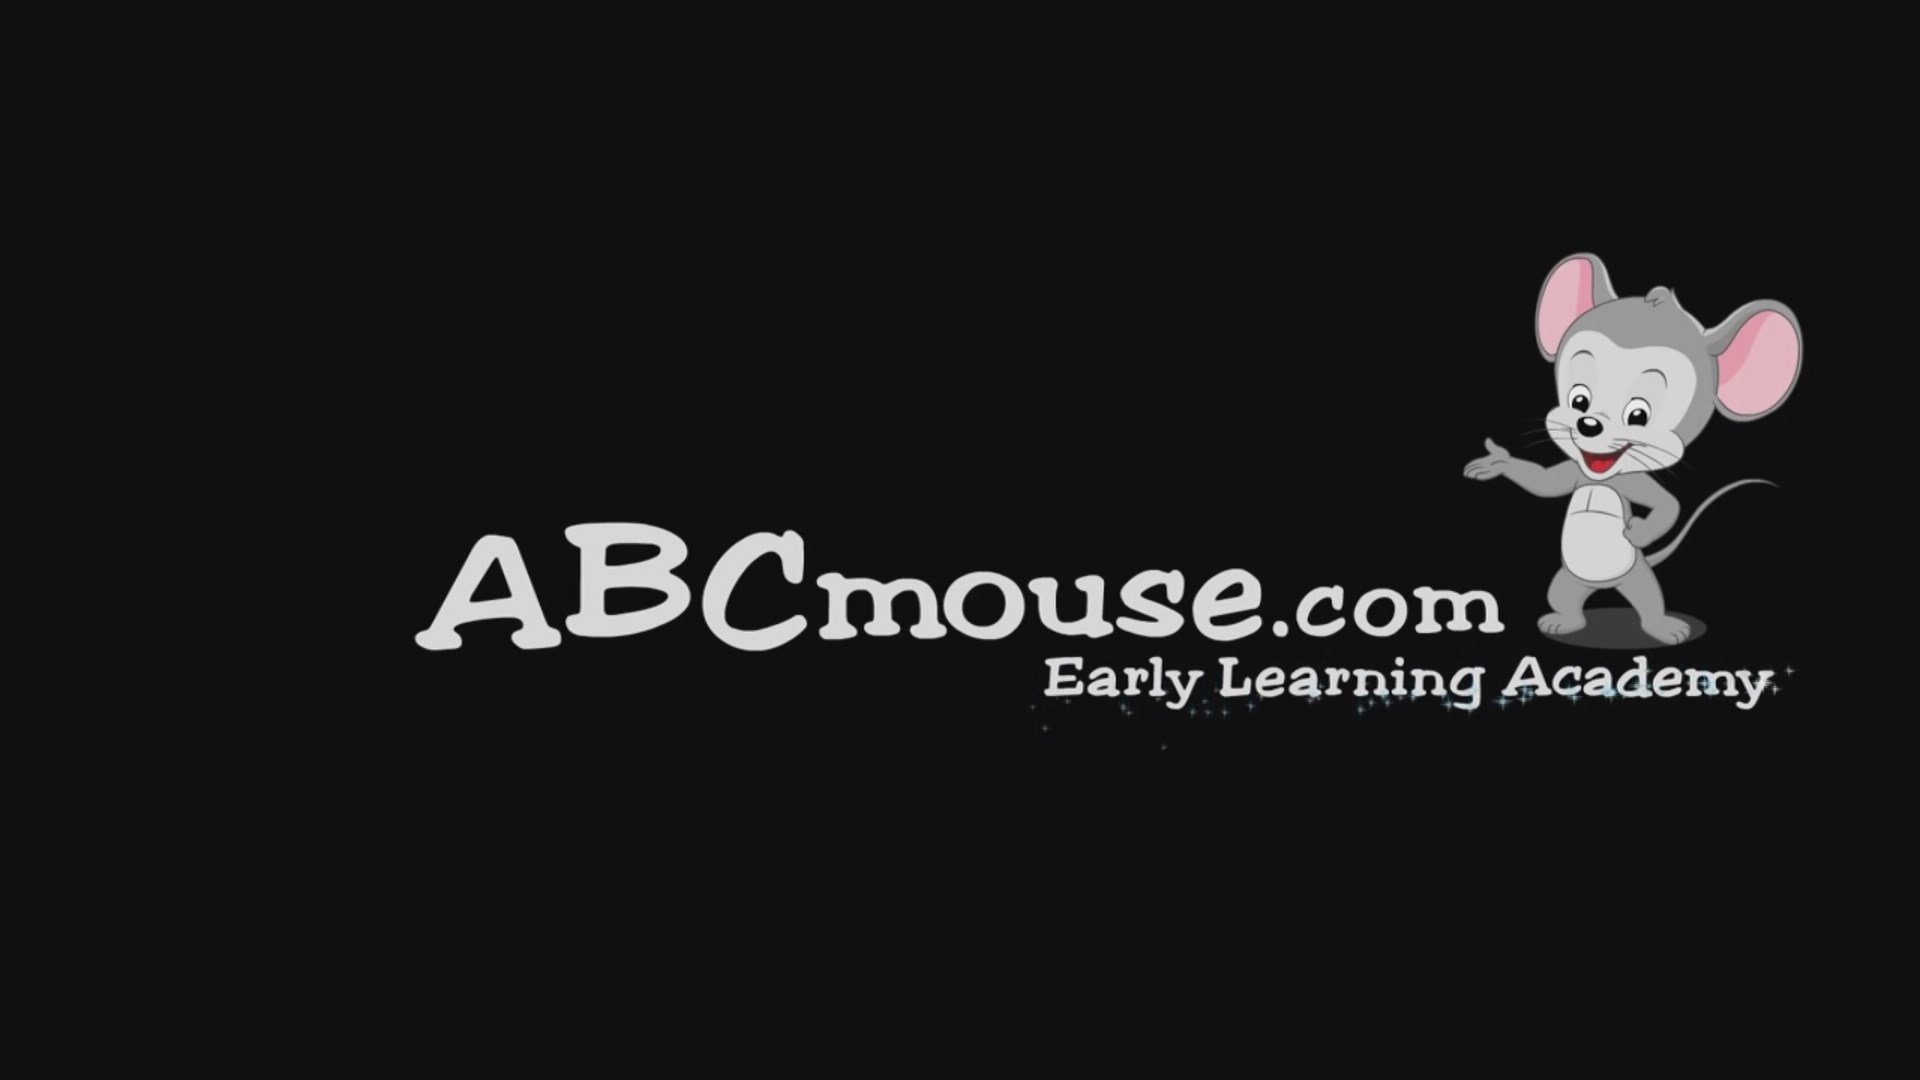 ABCMouse.com is a subscription-based website for kids. (Source: ABCMouse.com)